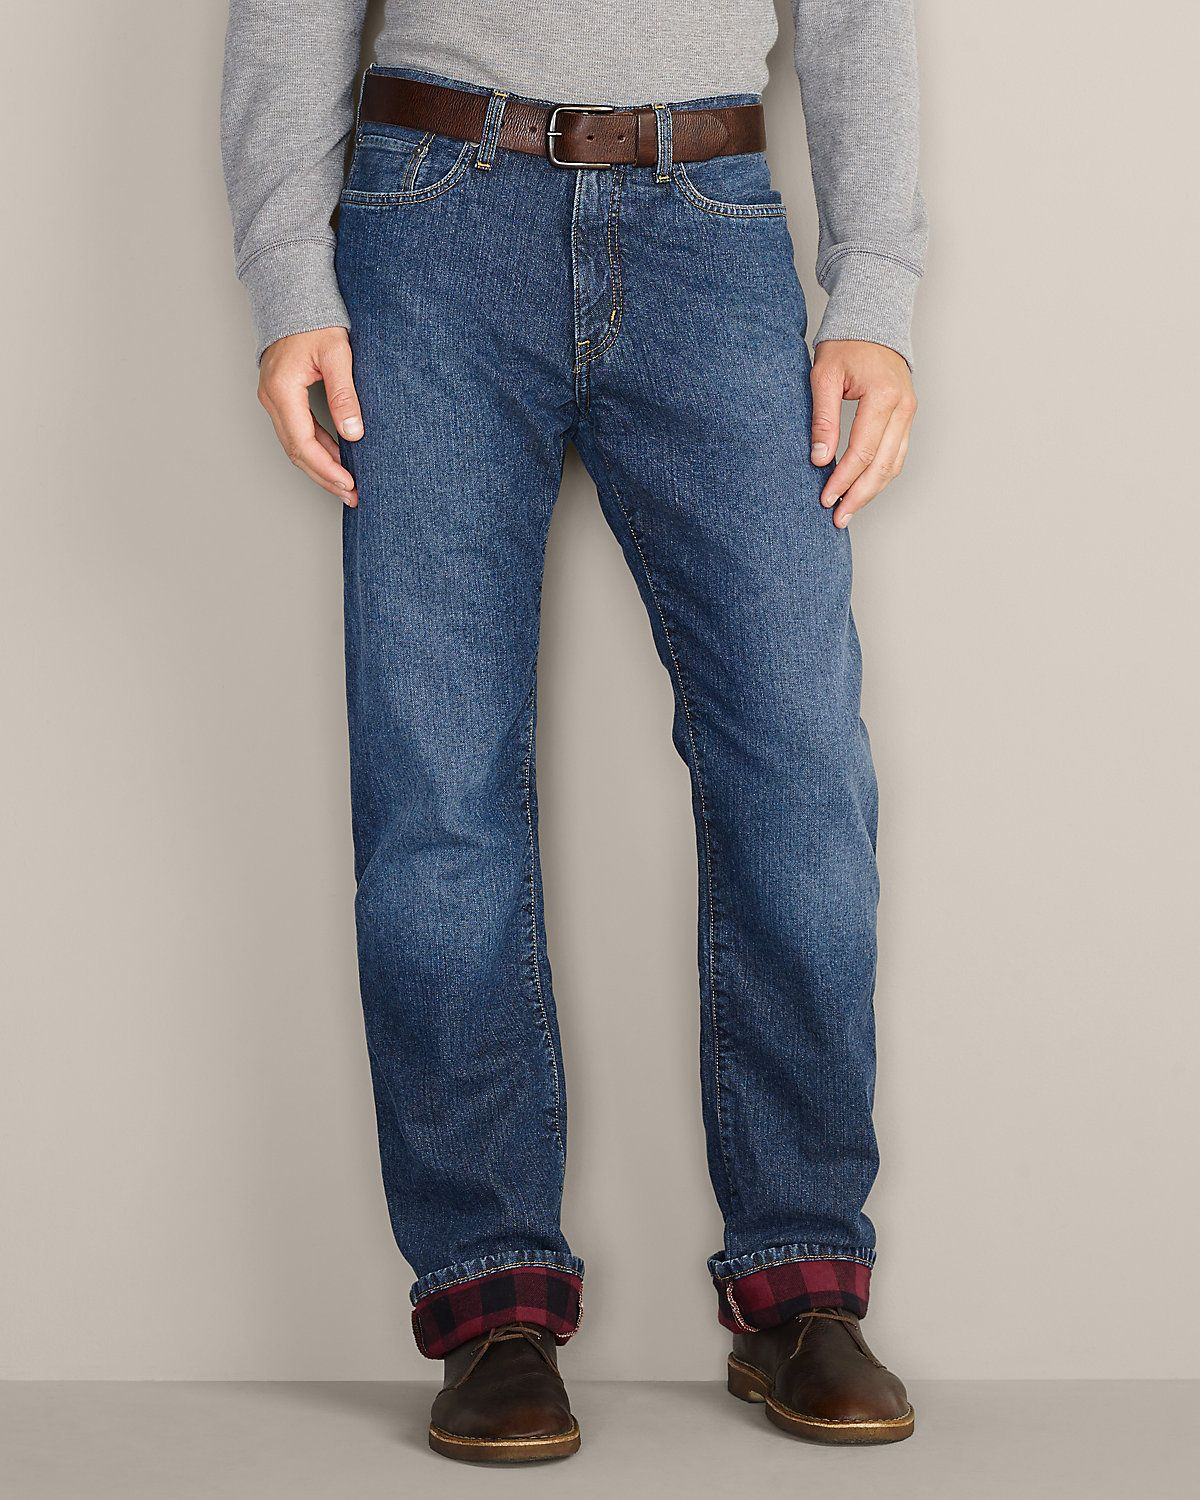 Flannellined Jeans Relaxed Fit Eddie Bauer Flannel